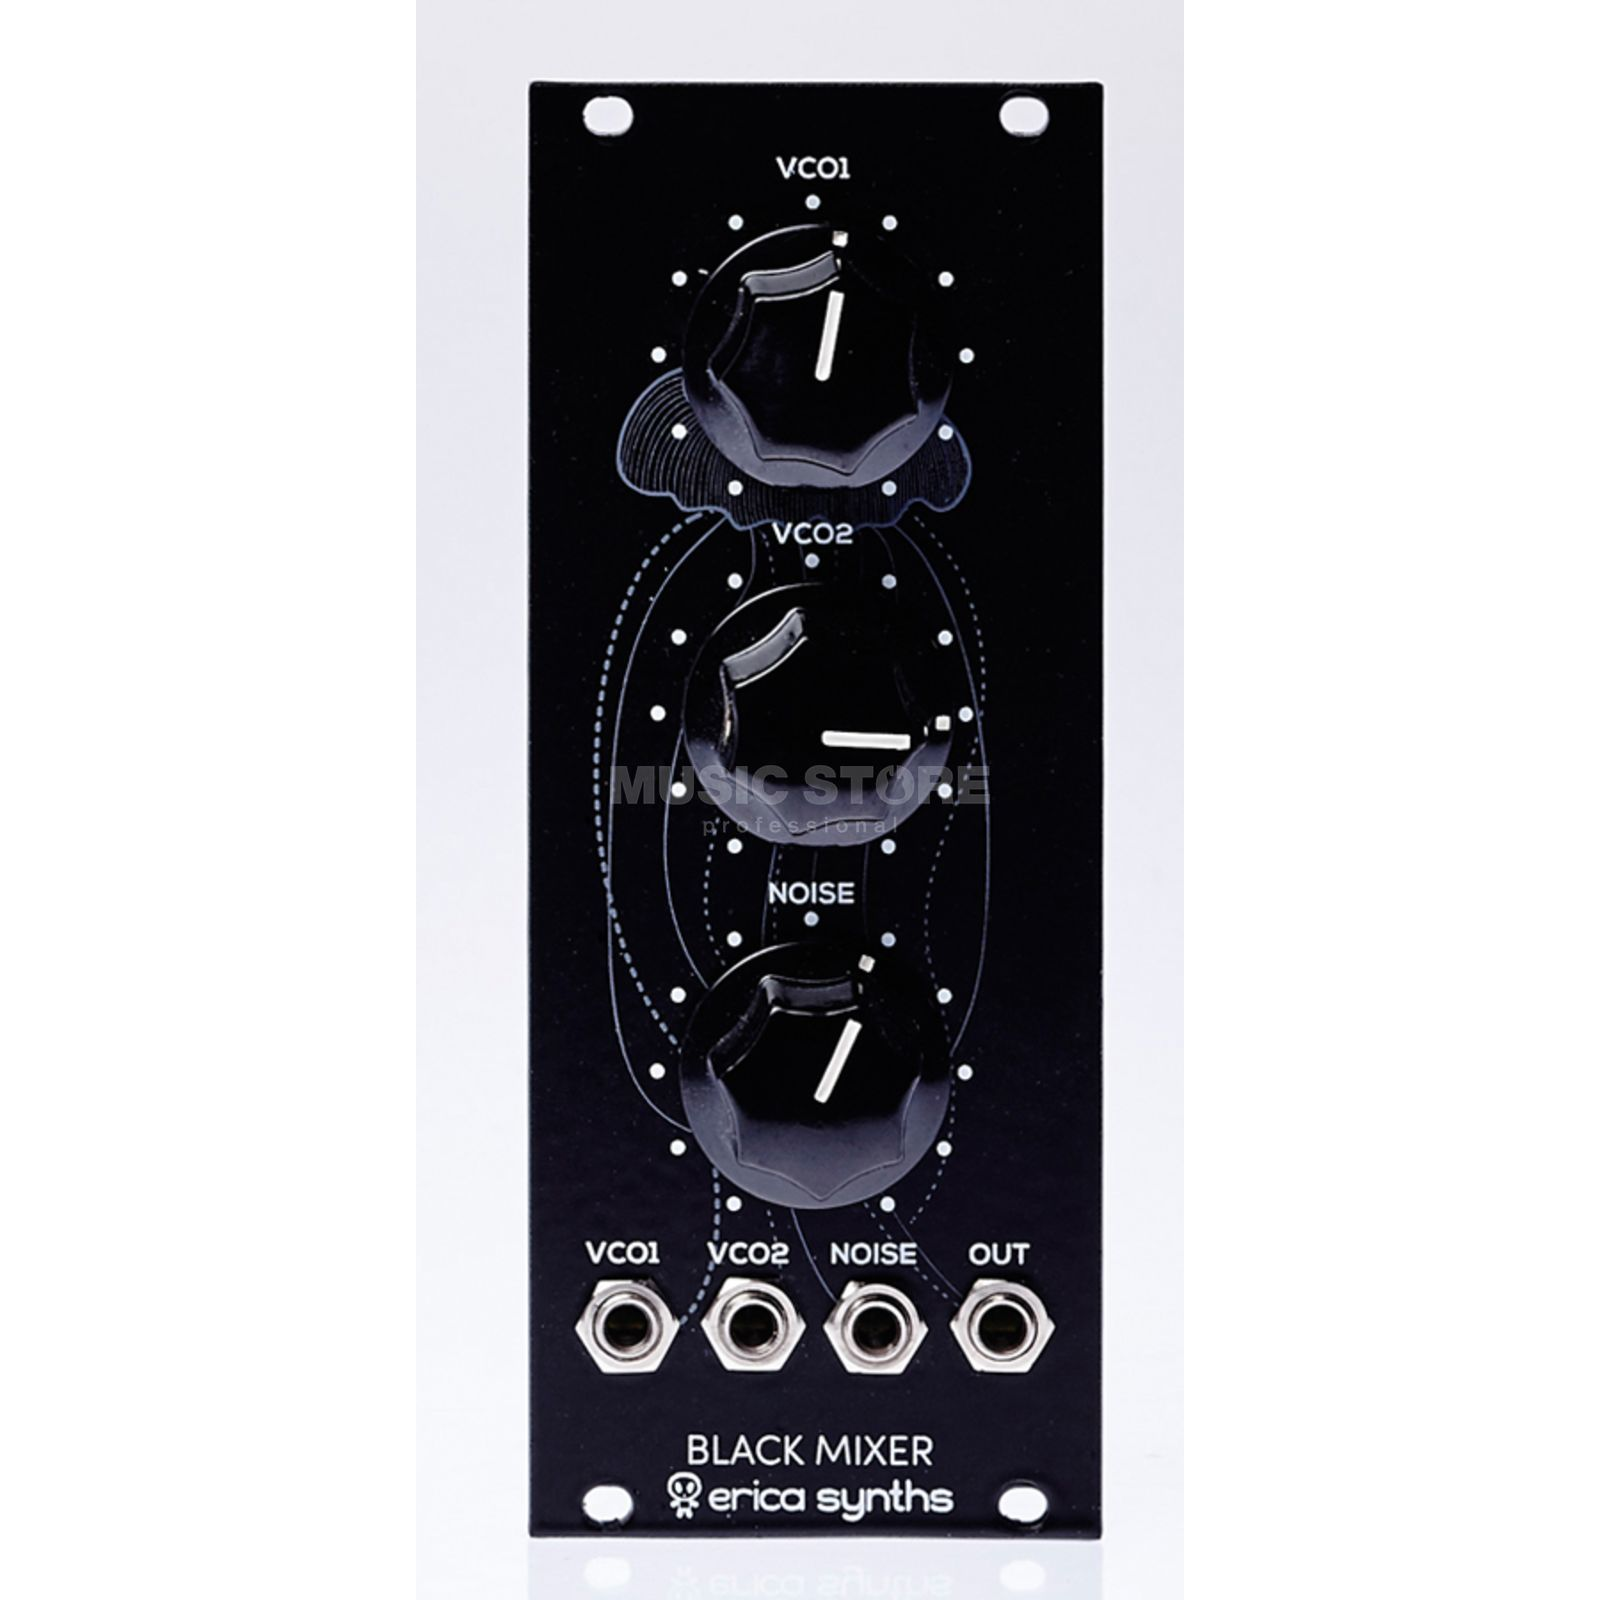 Erica Synths Black Mixer Product Image